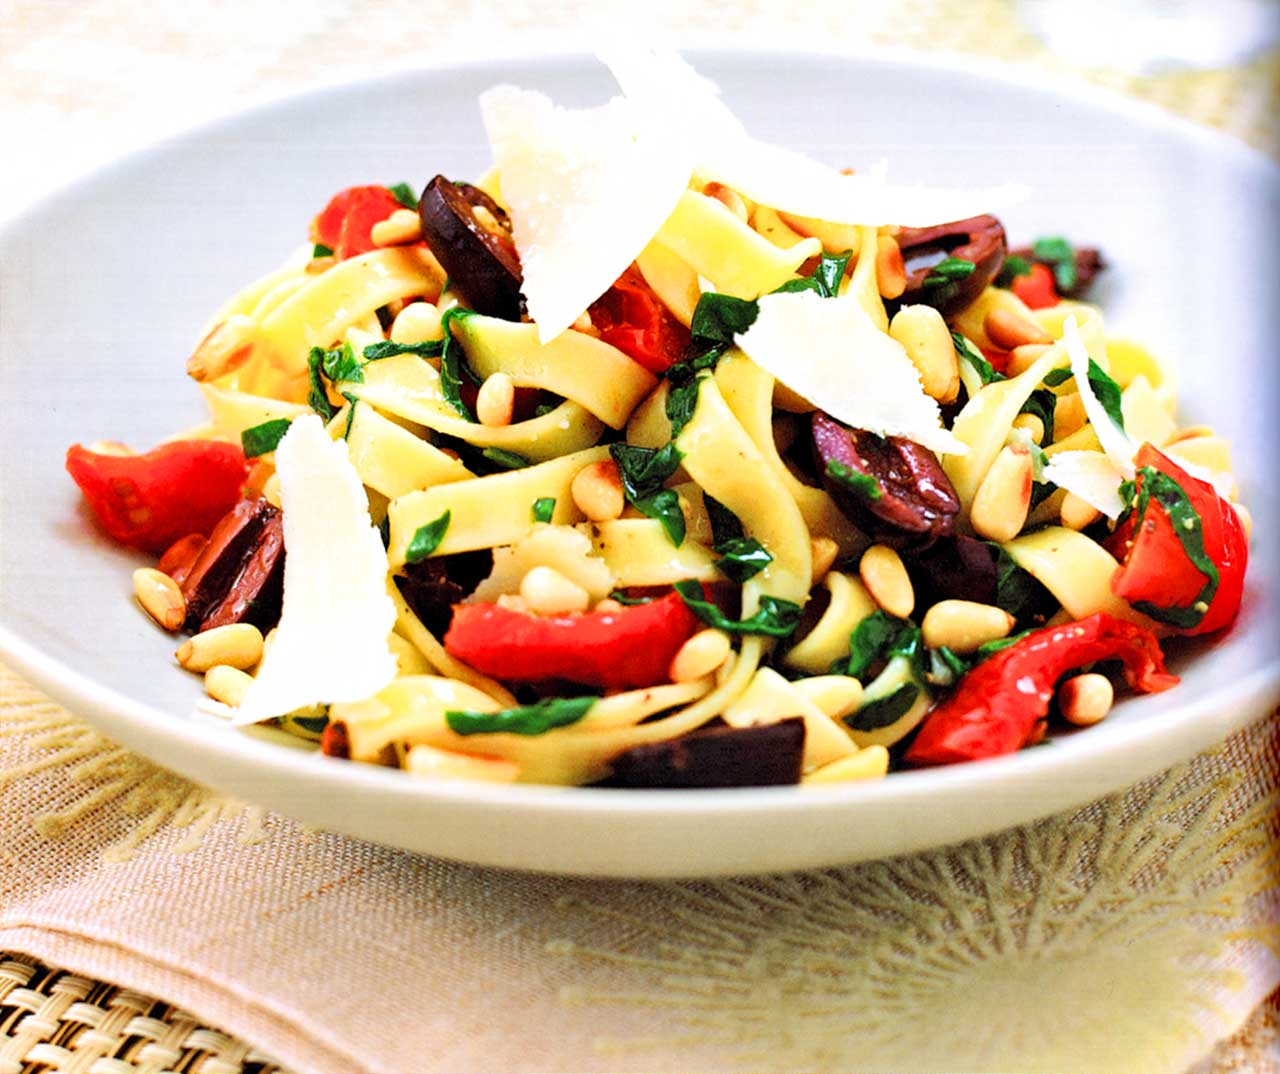 roasted vegetable pasta recipe-Tagliatelle With Sun-Blush Tomatoes And Toasted Pine Nuts